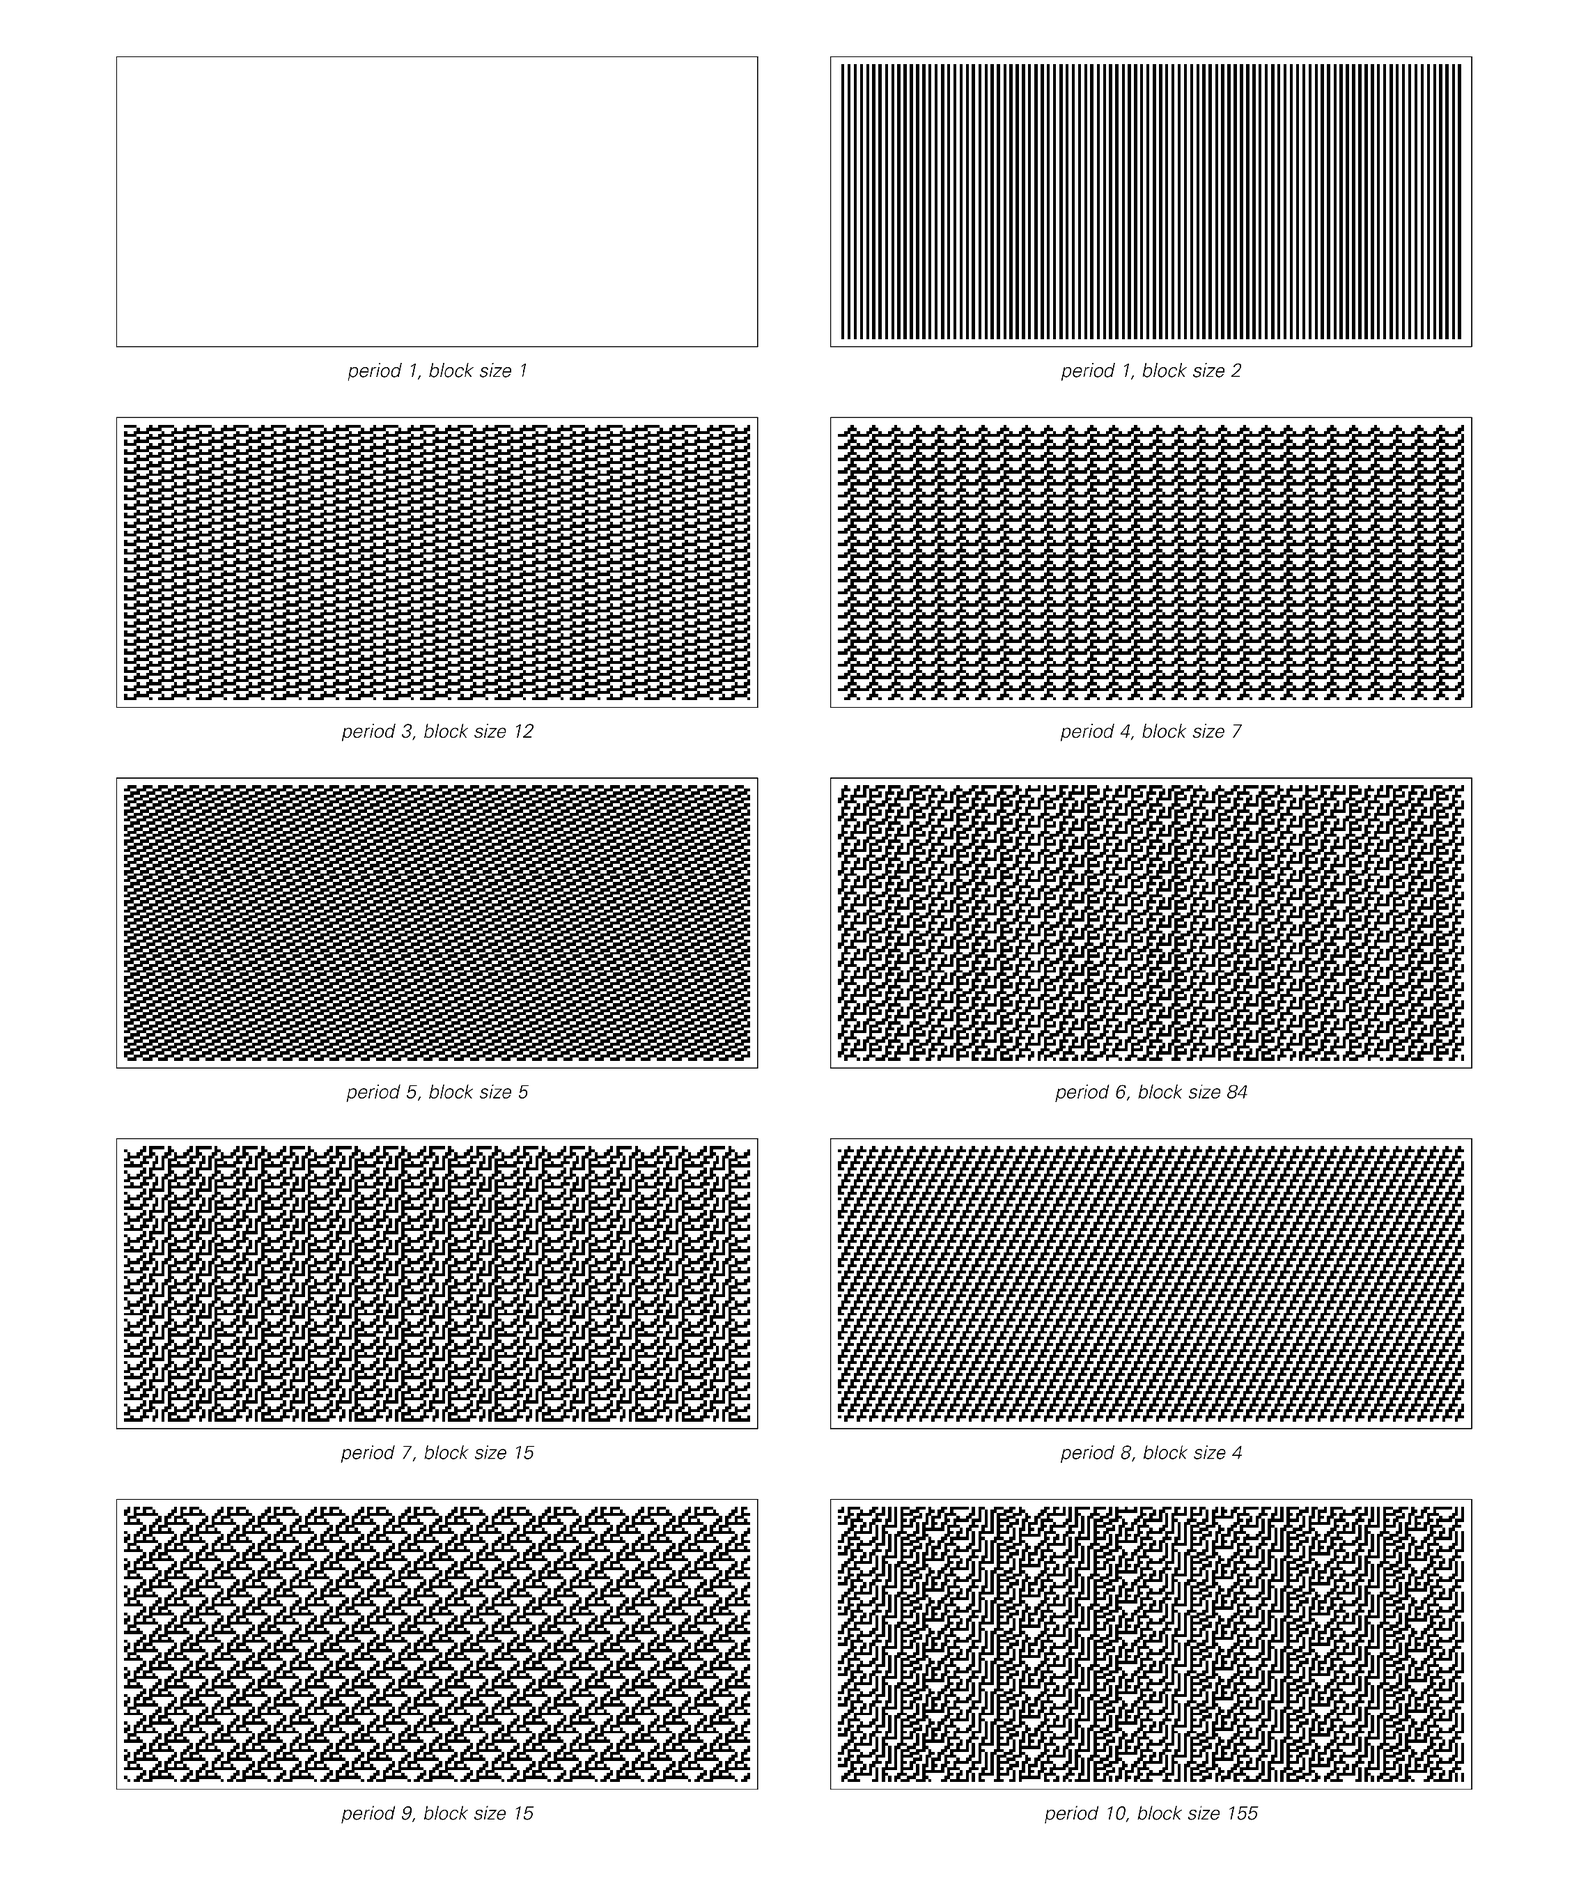 Patterns according to rule 30